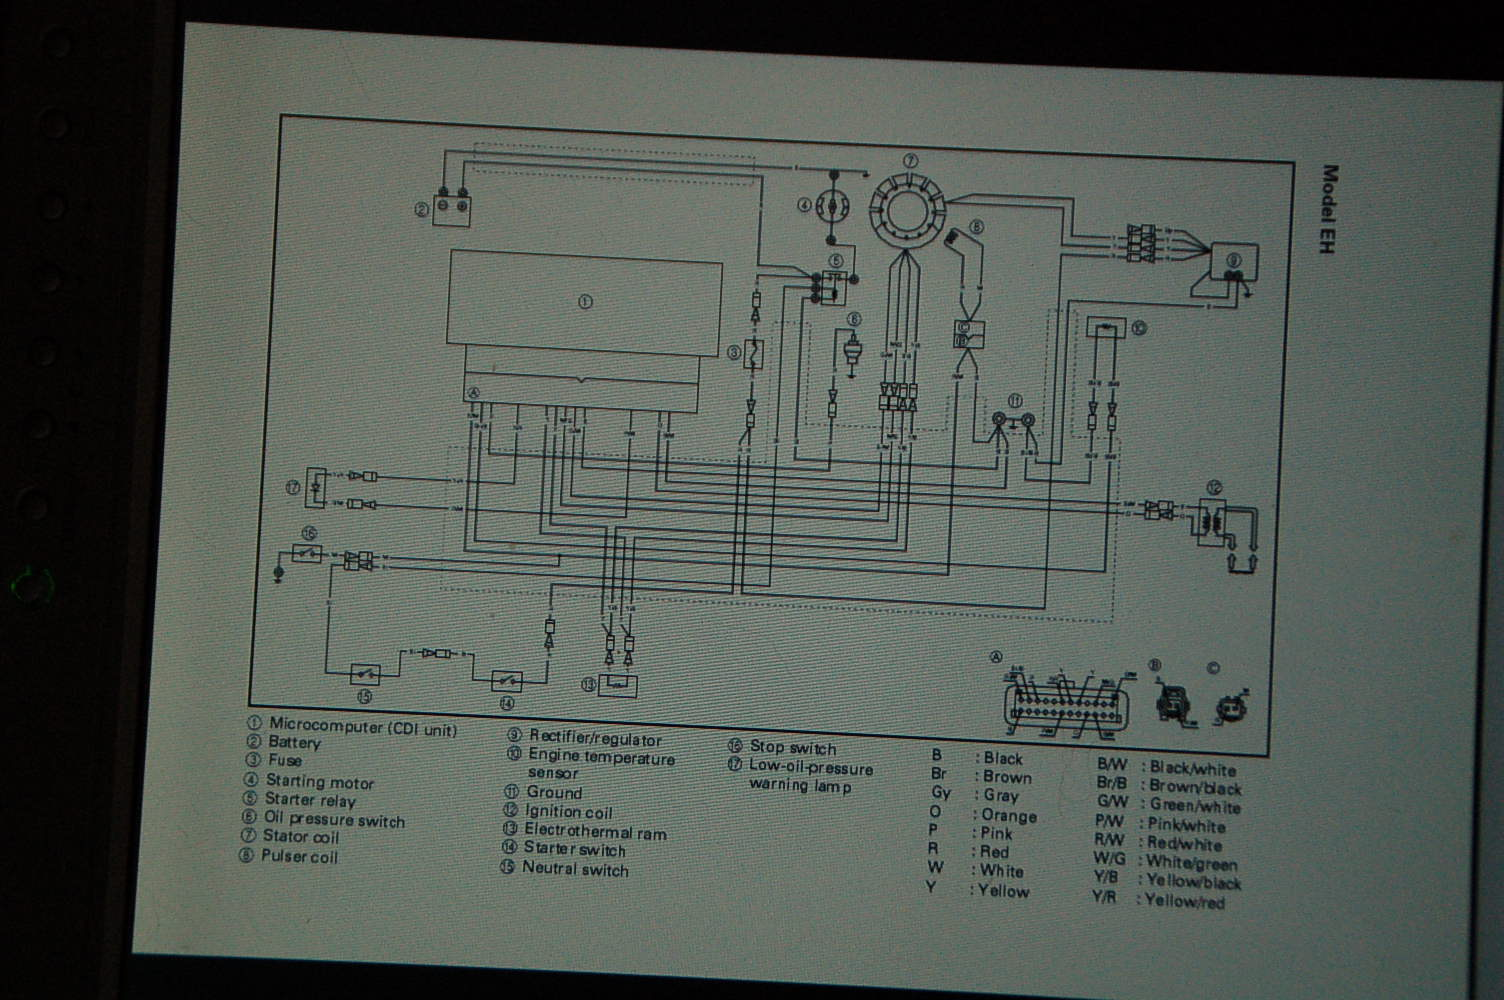 wiring up yamaha 30 boat design net yamaha ttr 225 wiring diagram at soozxer.org